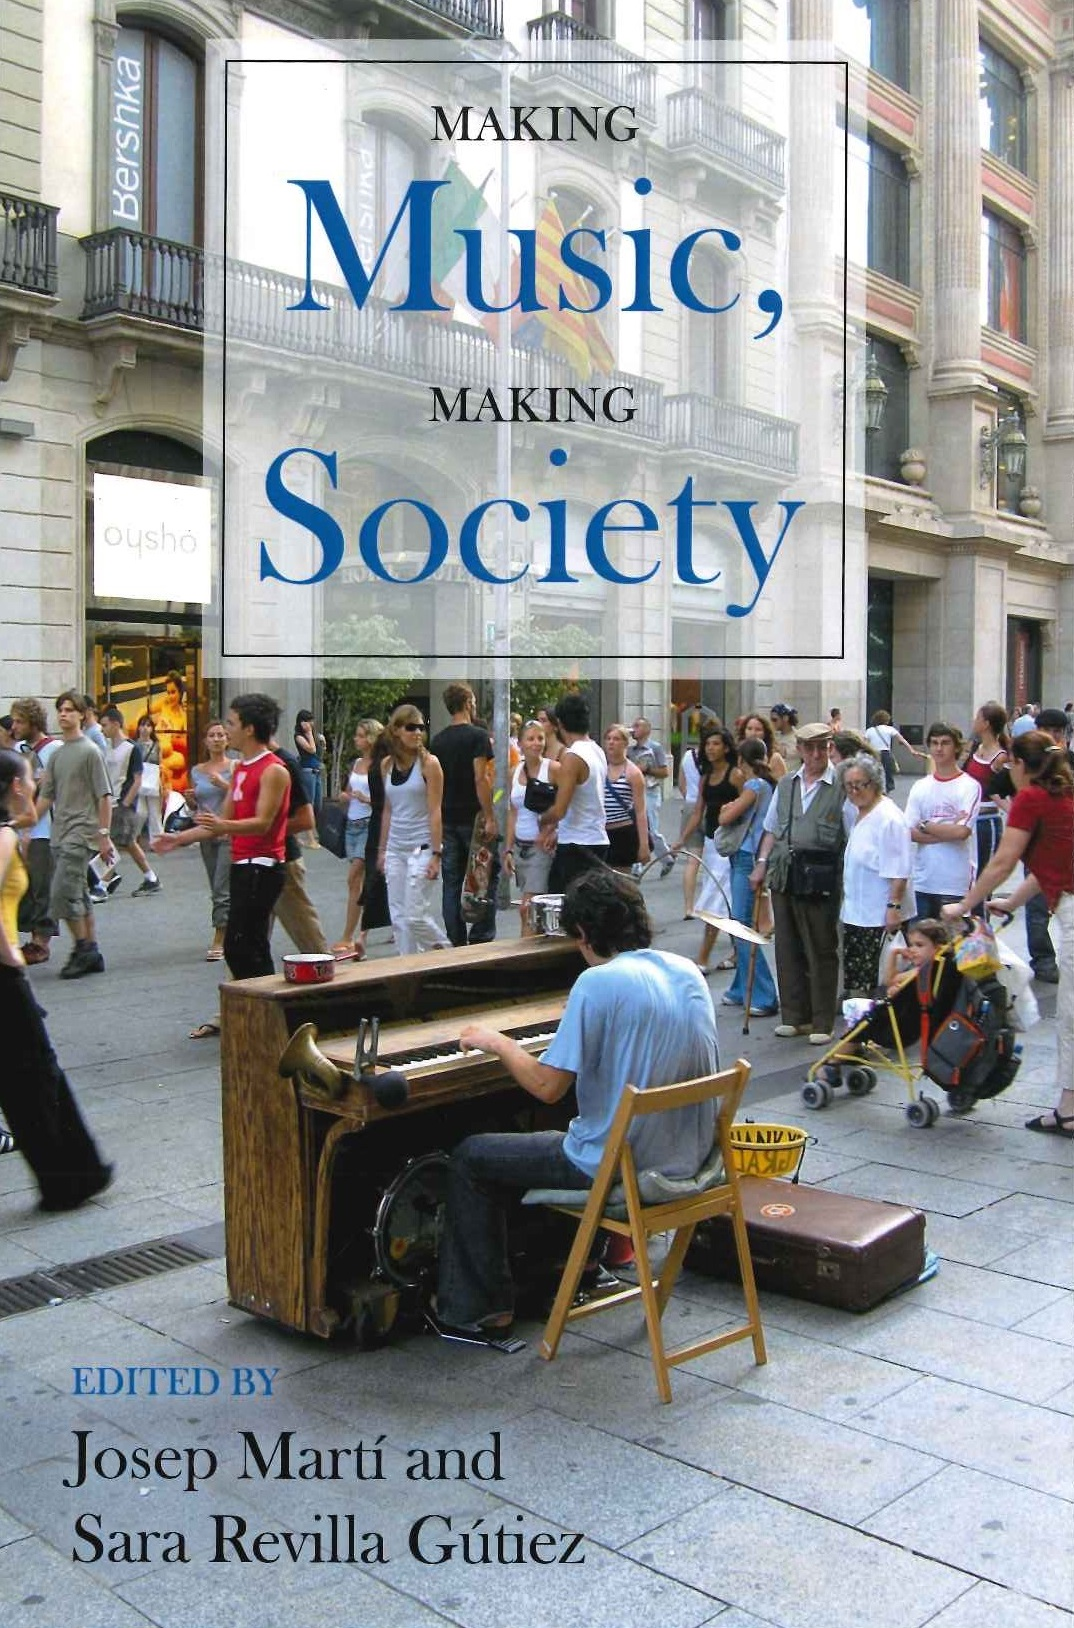 josep-marti-perez-making-music-making-society